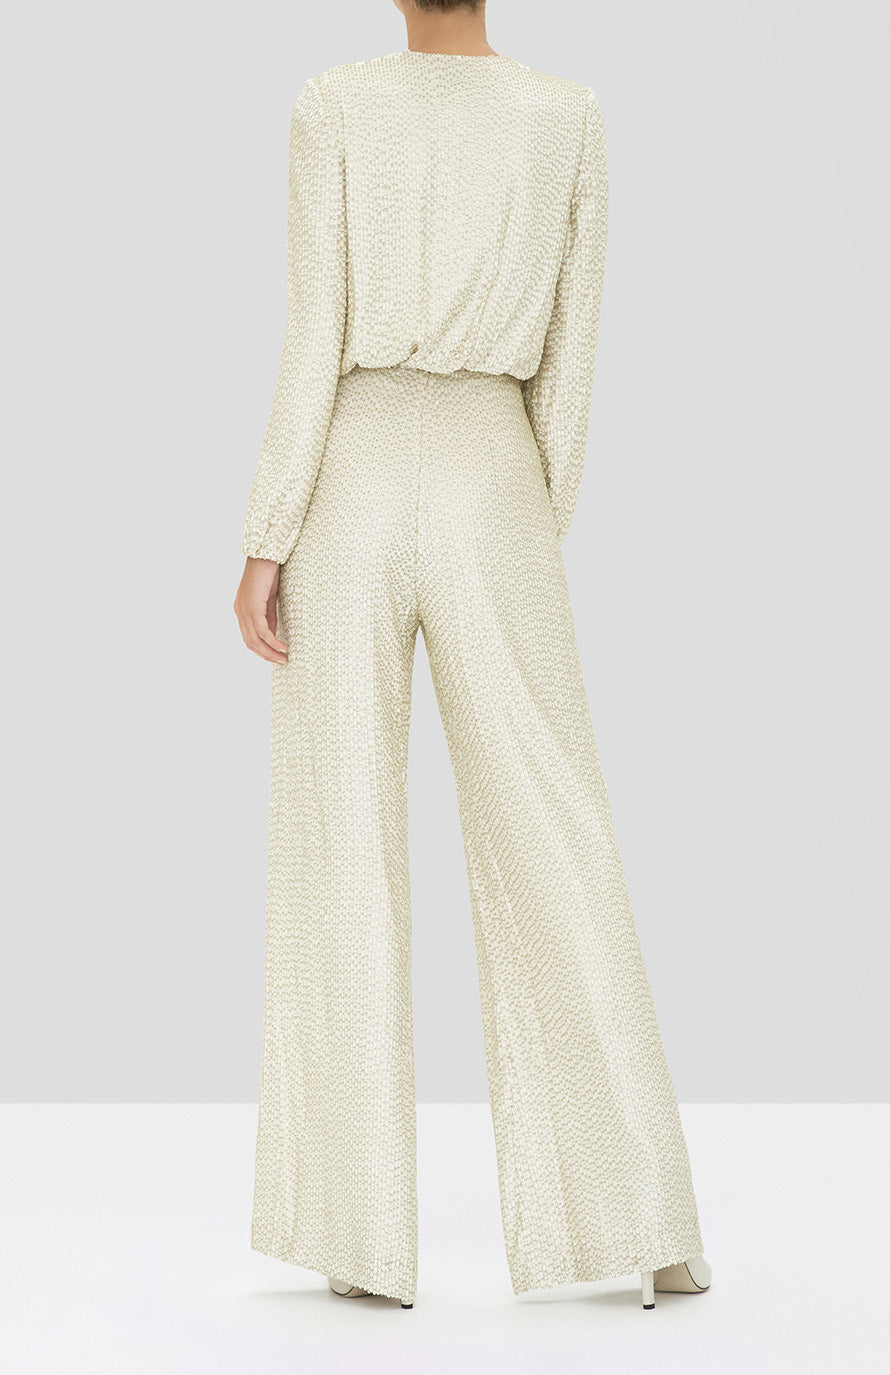 Alexis Ismet Jumpsuit in Ivory from the Holiday 2019 Ready To Wear Collection - Rear View